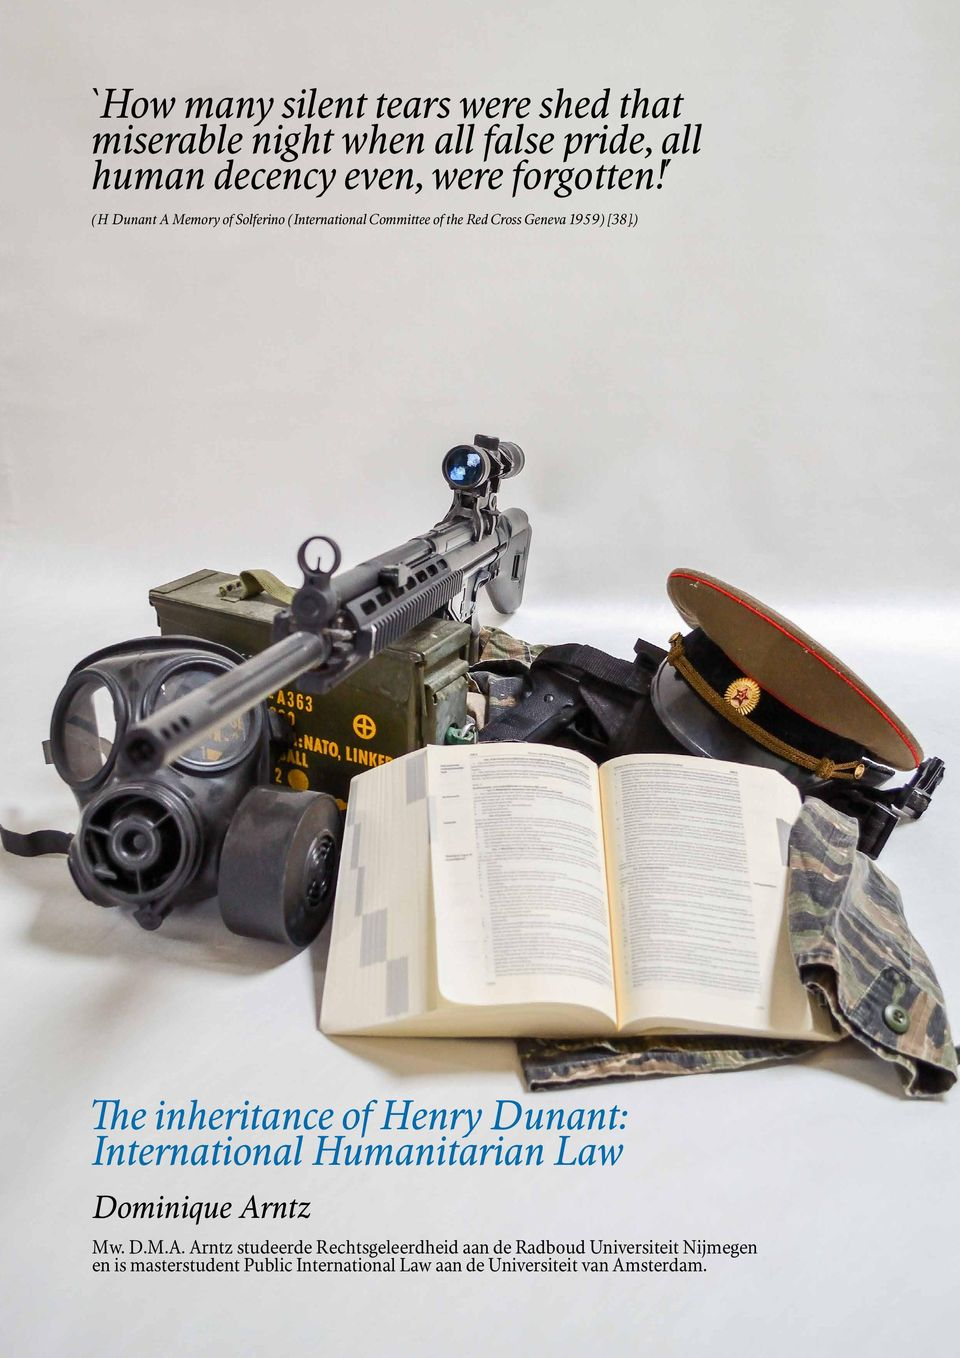 ) The inheritance of Henry Dunant: International Humanitarian Law Dominique Ar